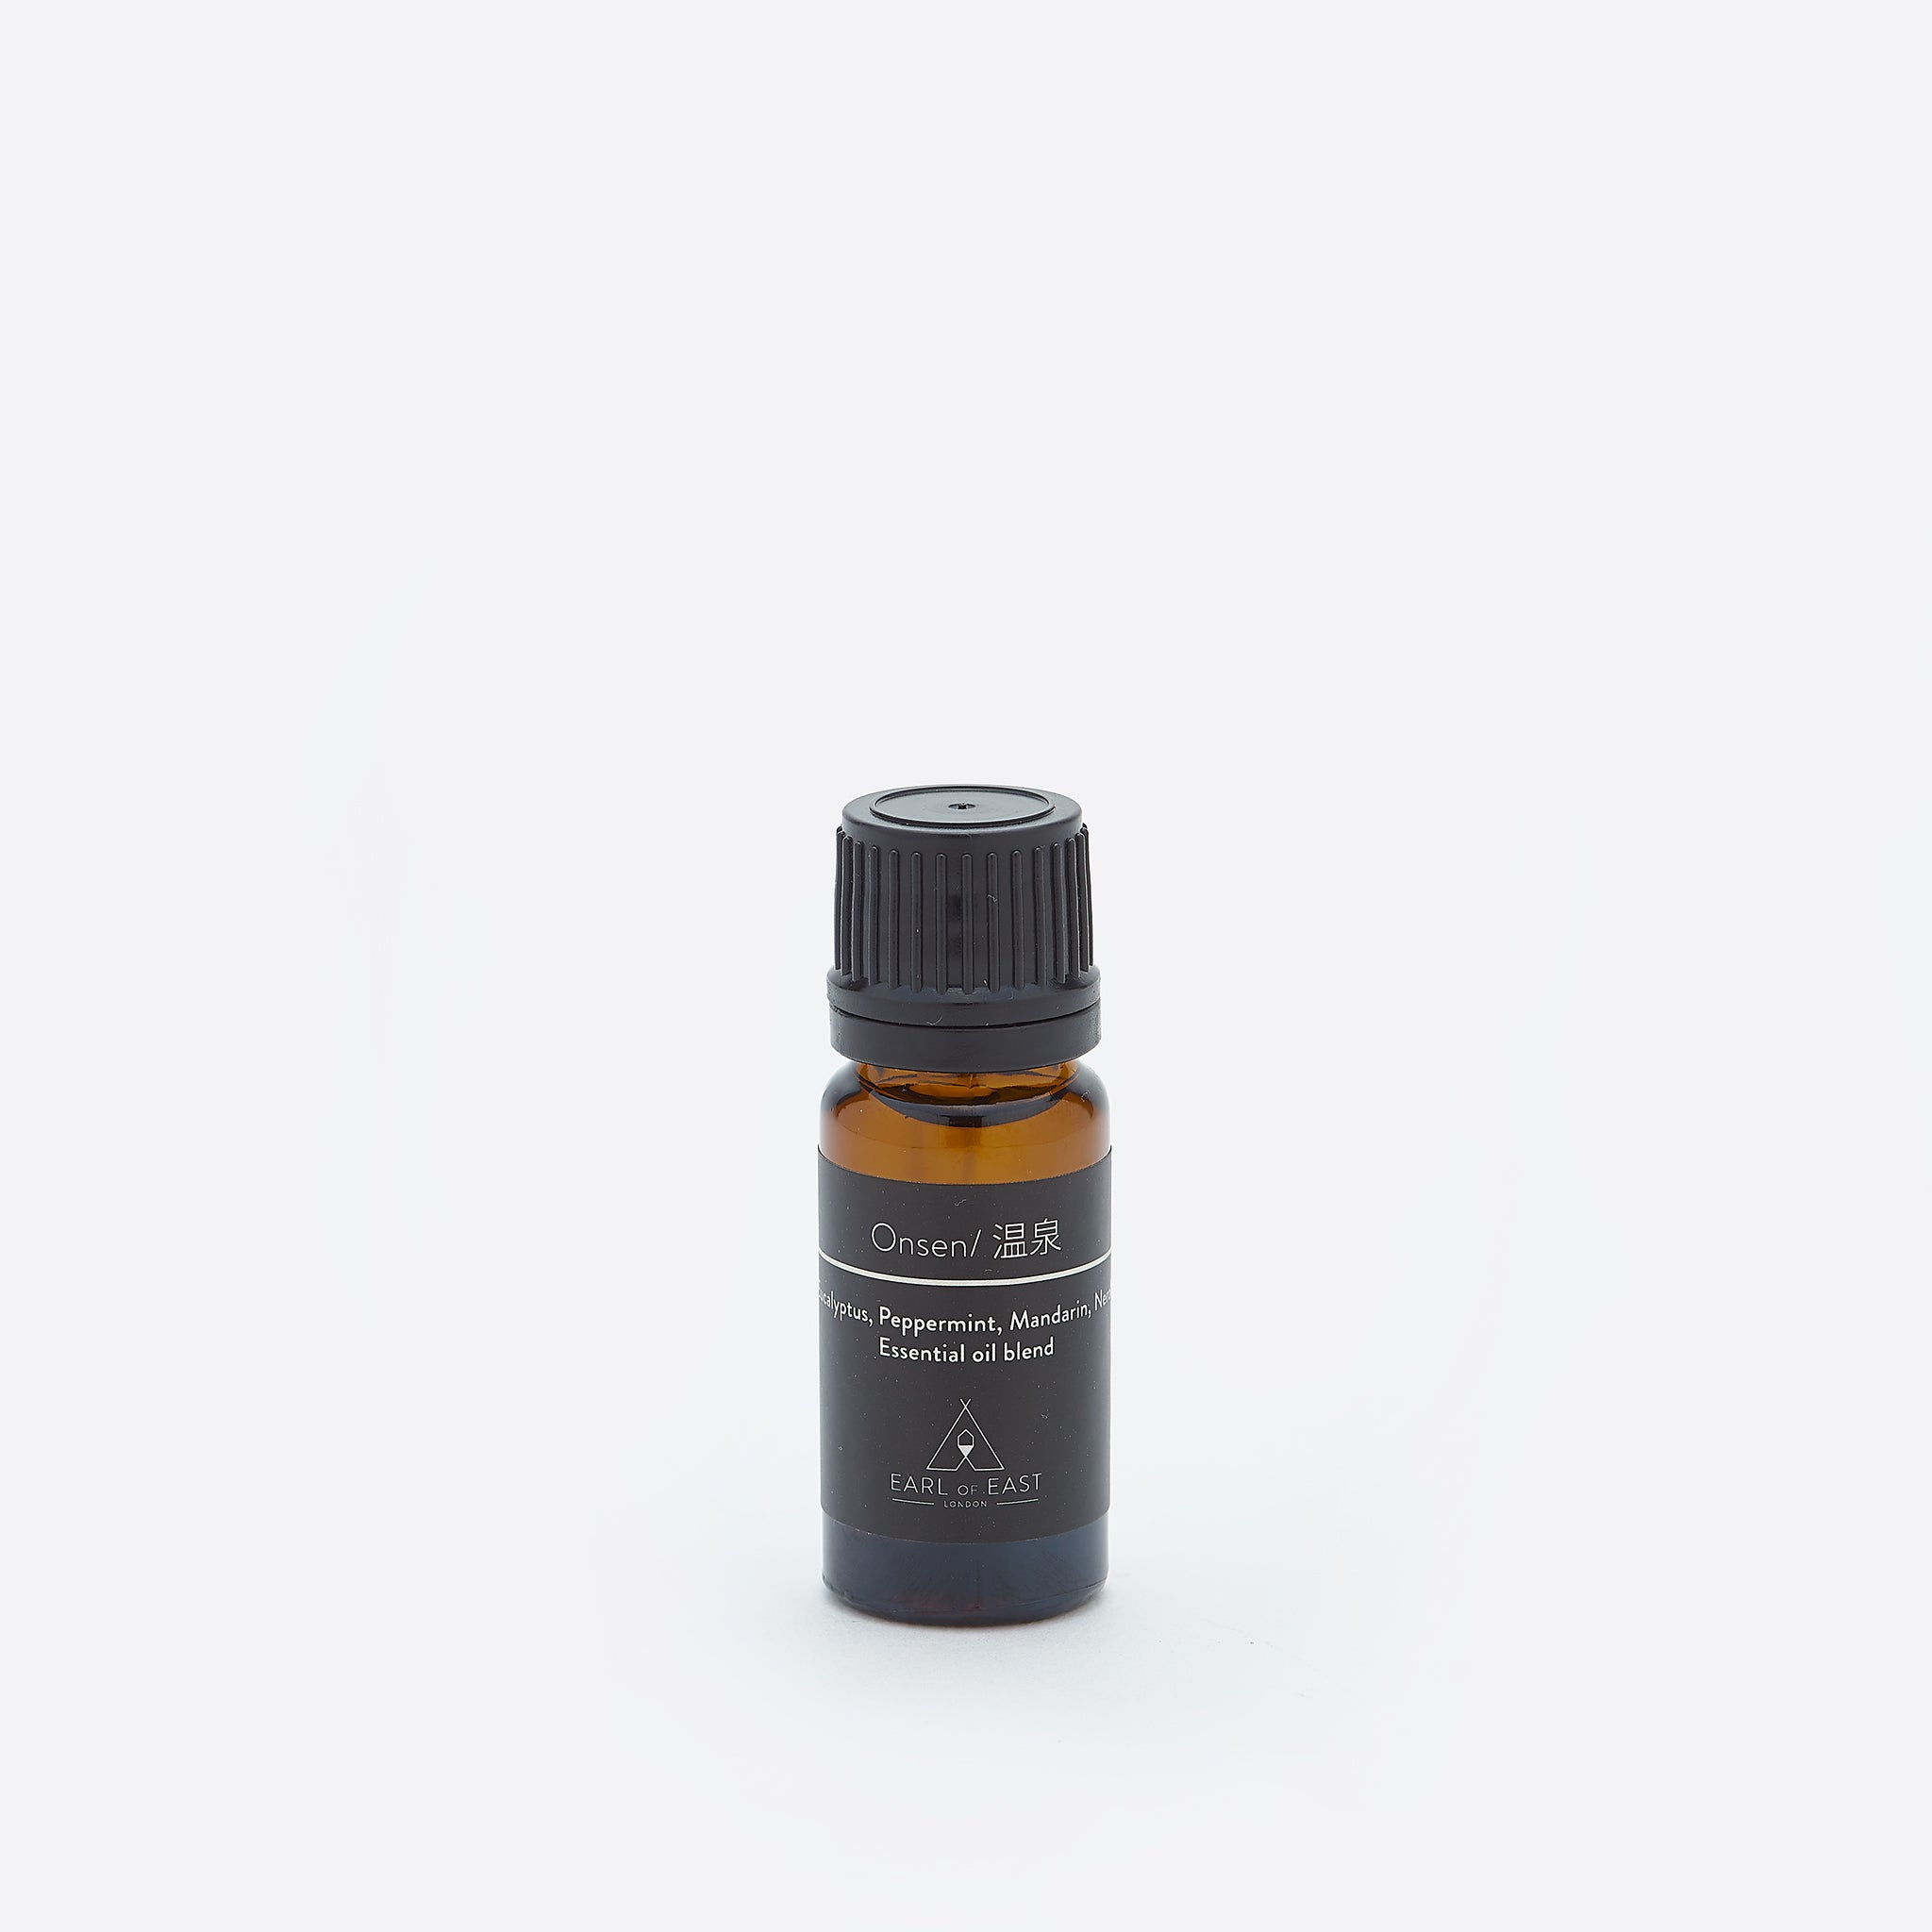 Earl of East Essential Oils - Onsen